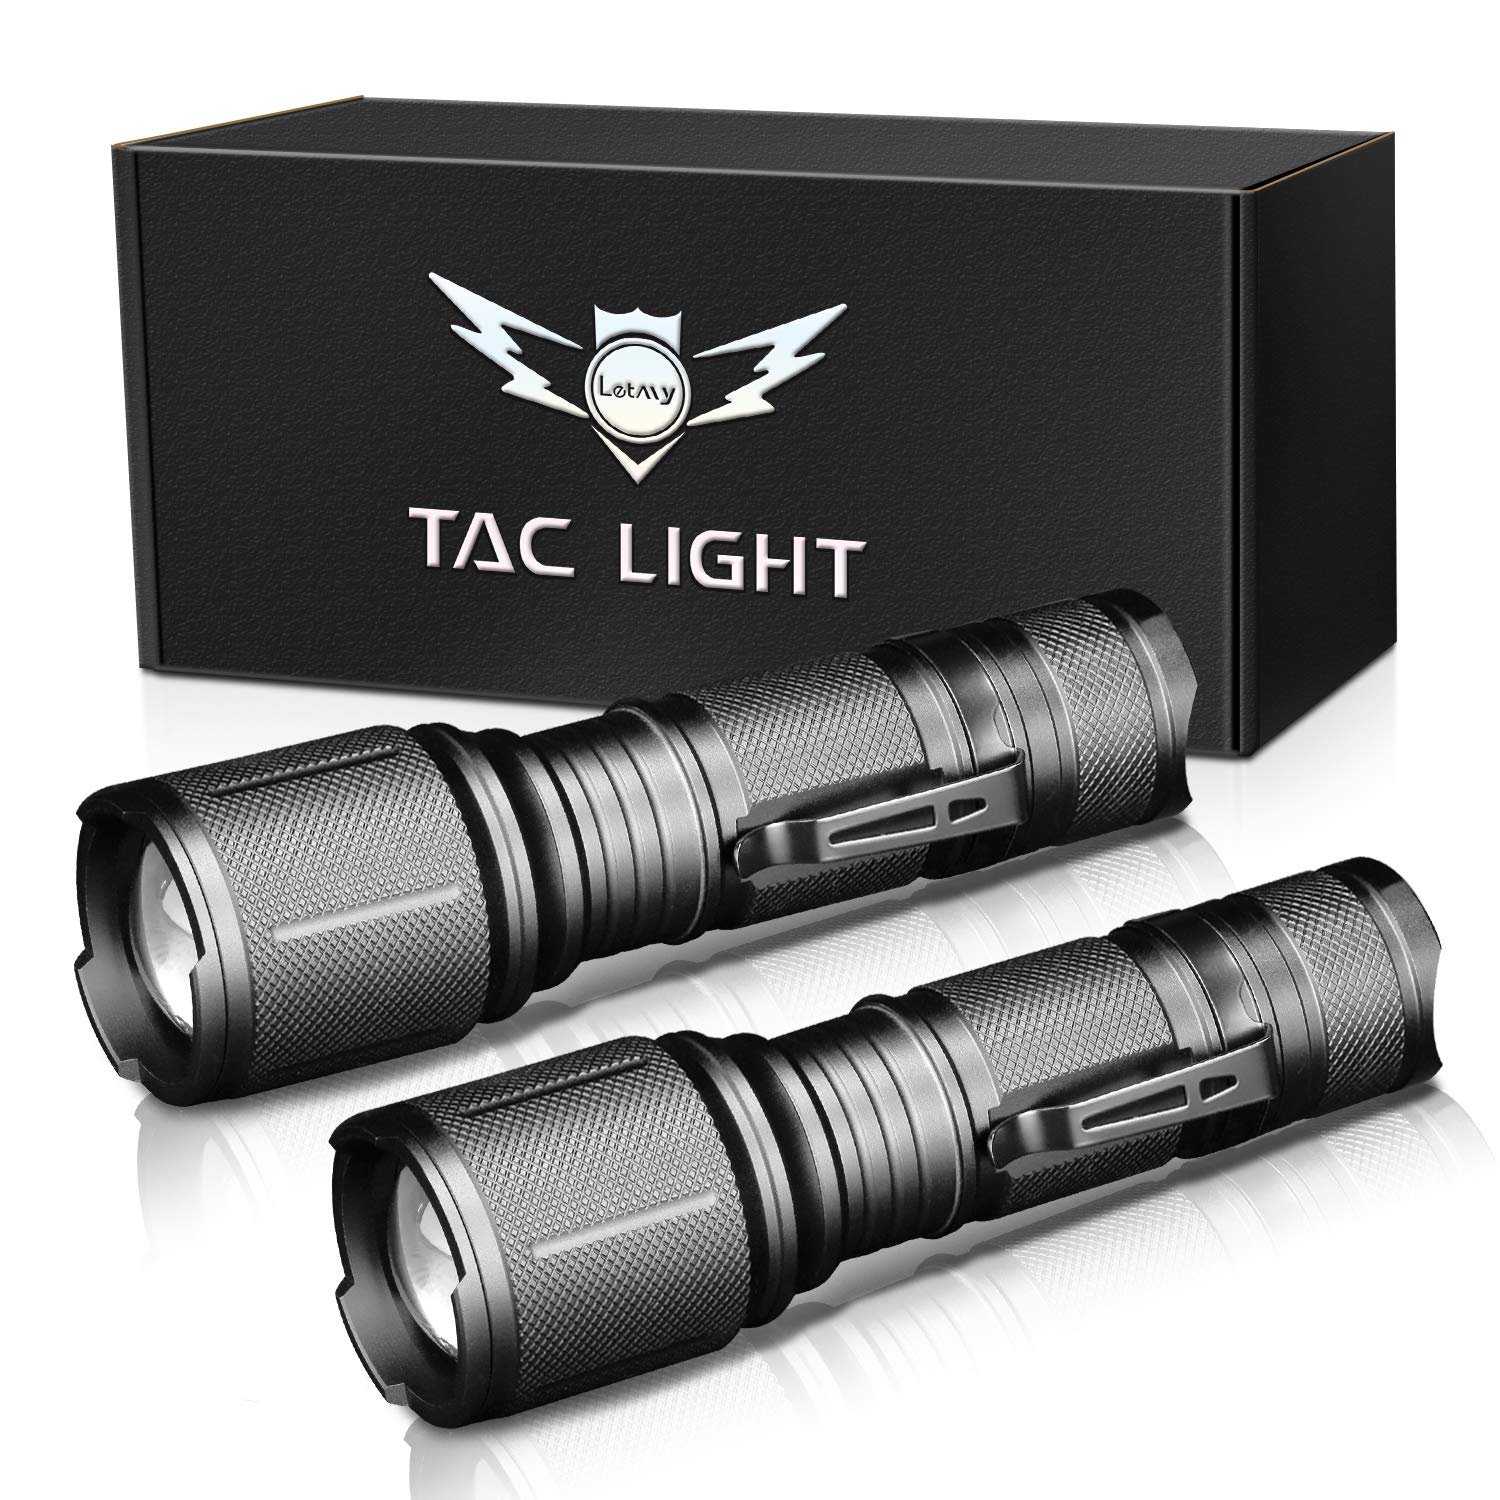 LETMY LED Tactical Flashlight, Ultra Bright 2000 Lumen XML T6 LED Flashlights With 5 Modes, Zoomable and Water Resistant for Camping Biking Hiking Home Emergency, 2 Pack by LETMY